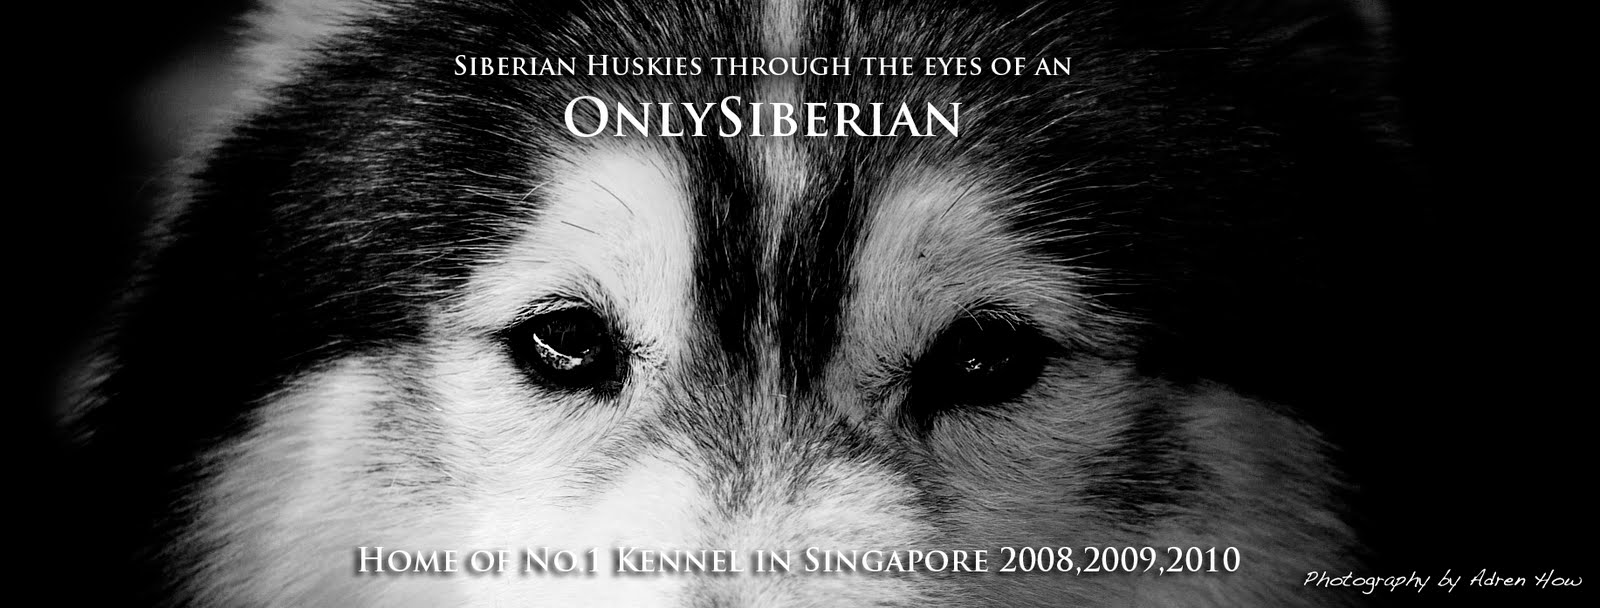 ONLYSIBERIANS/DEKTOS-      Home of No.1 Kennel in Singapore